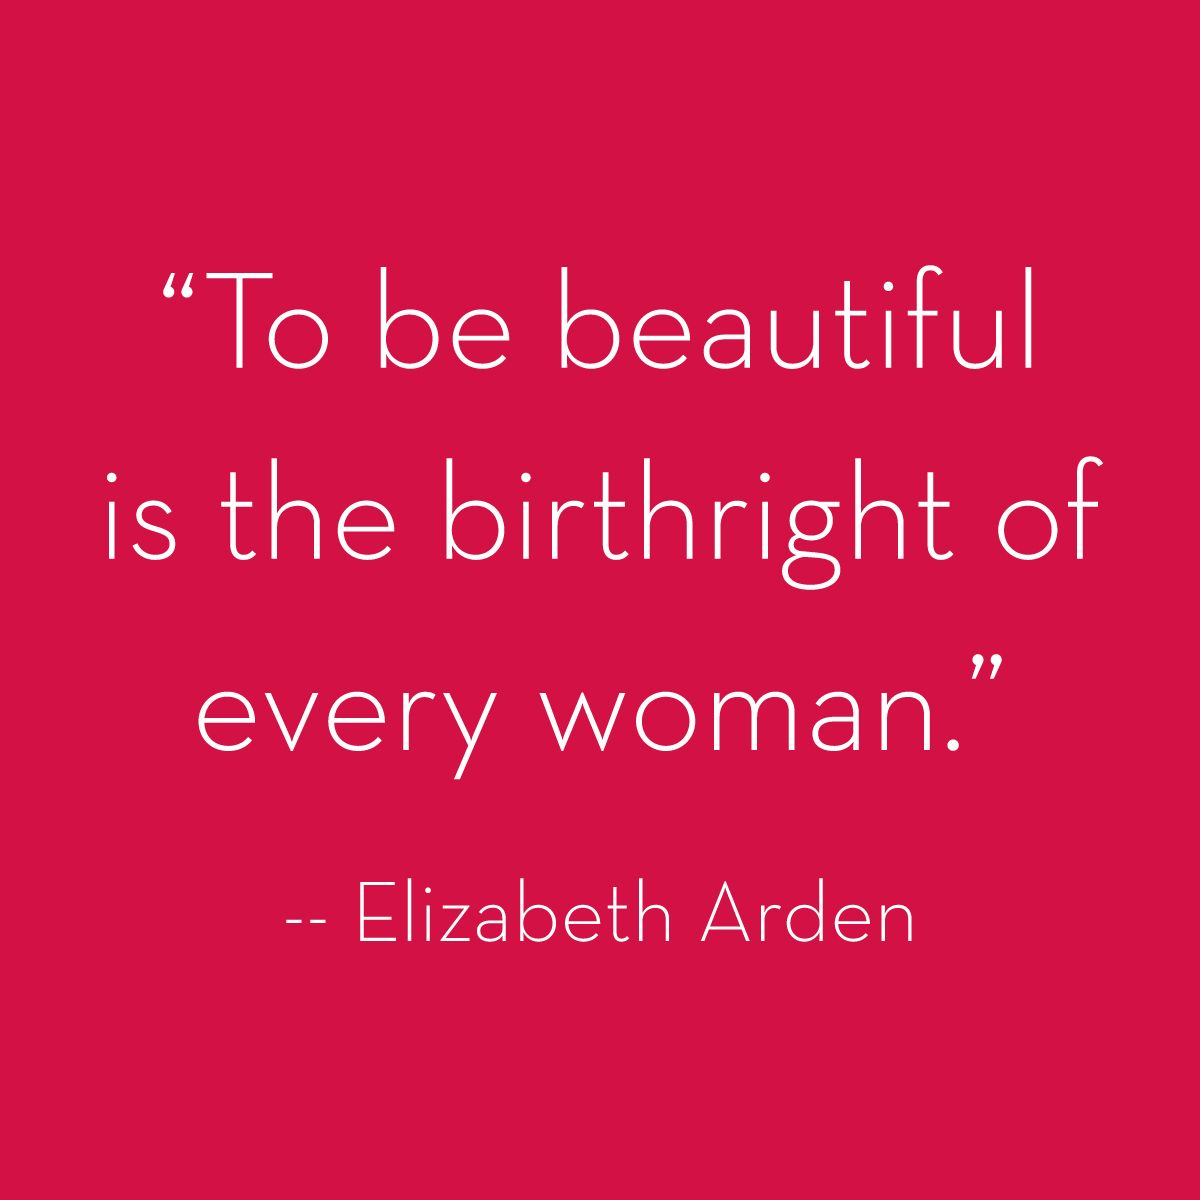 """""""To be beautiful is the birthright of every woman."""" Elizabeth Arden #BeautifulToMe #ElizabethArden"""